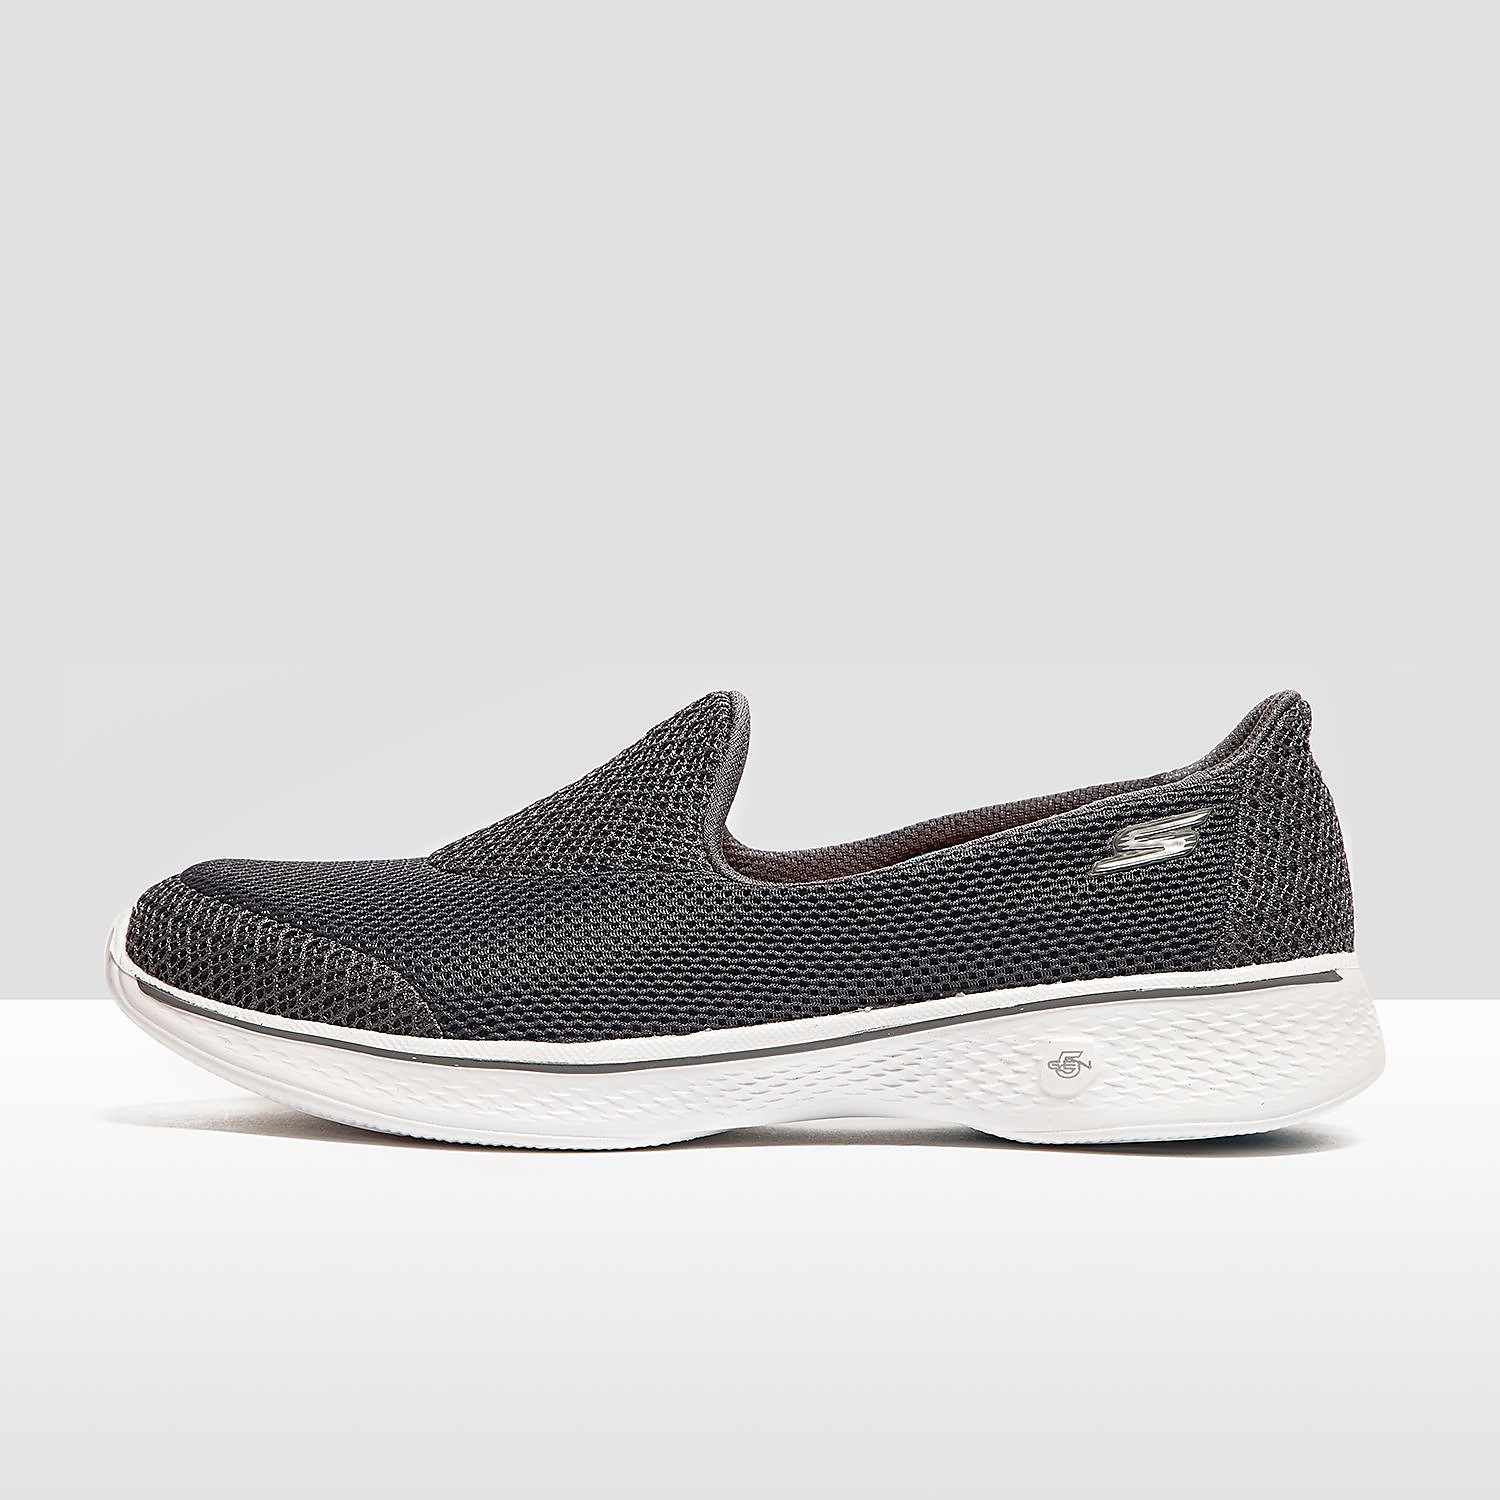 Skechers GOWALK 4- PROPEL WOMEN'S CASUAL SHOES